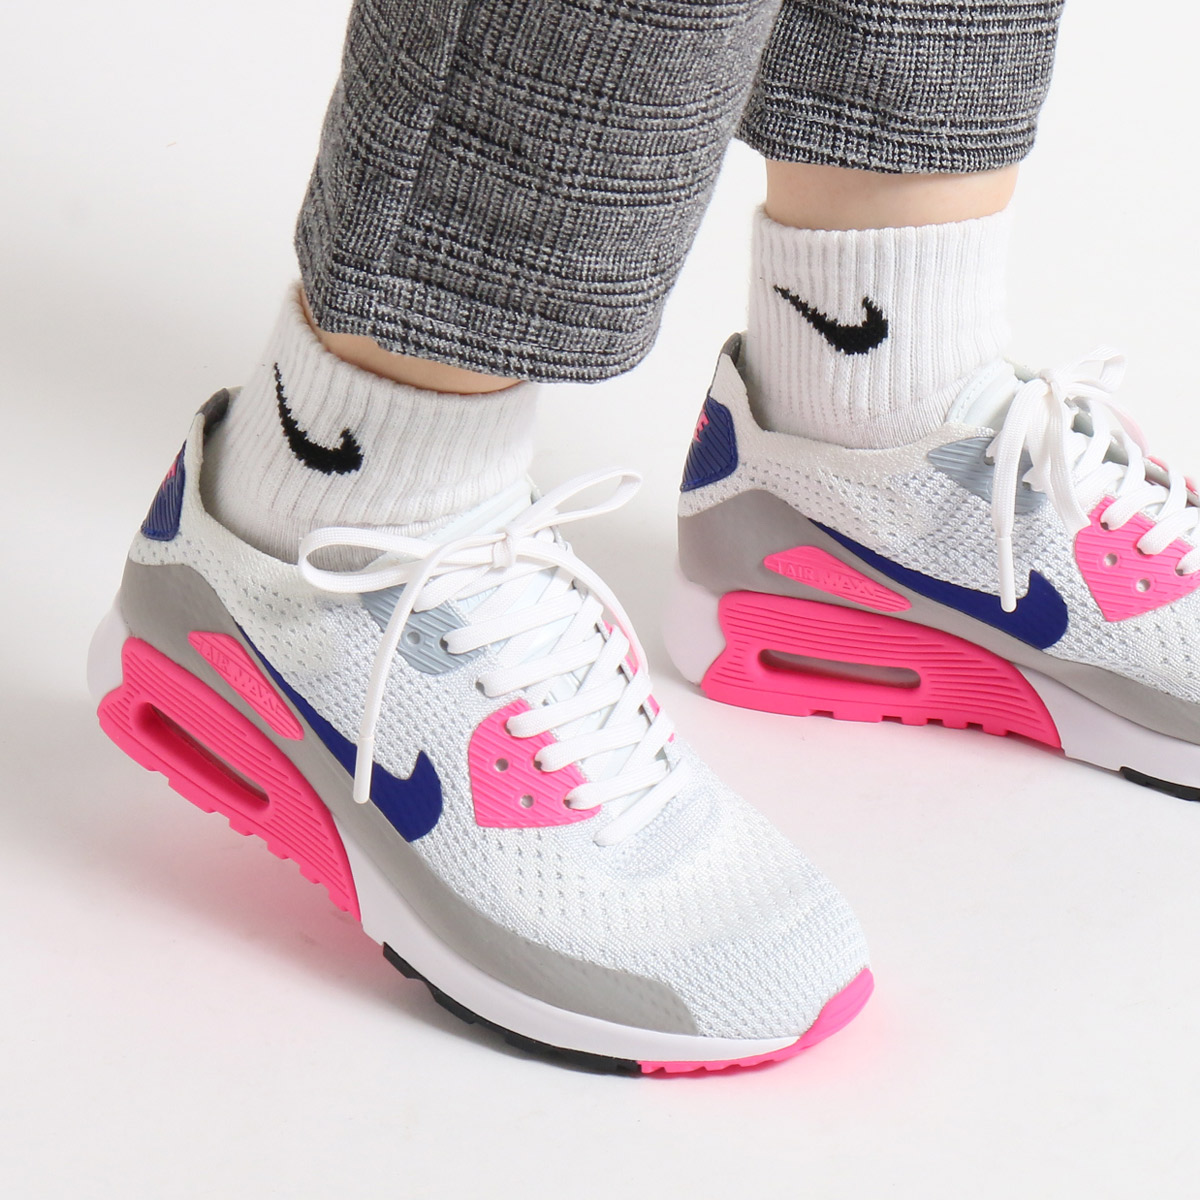 NIKE W AIR MAX 90 ULTRA 2.0 FLYKNIT(ナイキ ウィレディース エア マックス 90 ウルトラ 2.0 フライニット)(WHITE/CONCORD-LASER PINK-BLACK-MATTE SILVER-PURE PLATINUM)【レディース スニーカー】【ピンク PINK】17SP-S